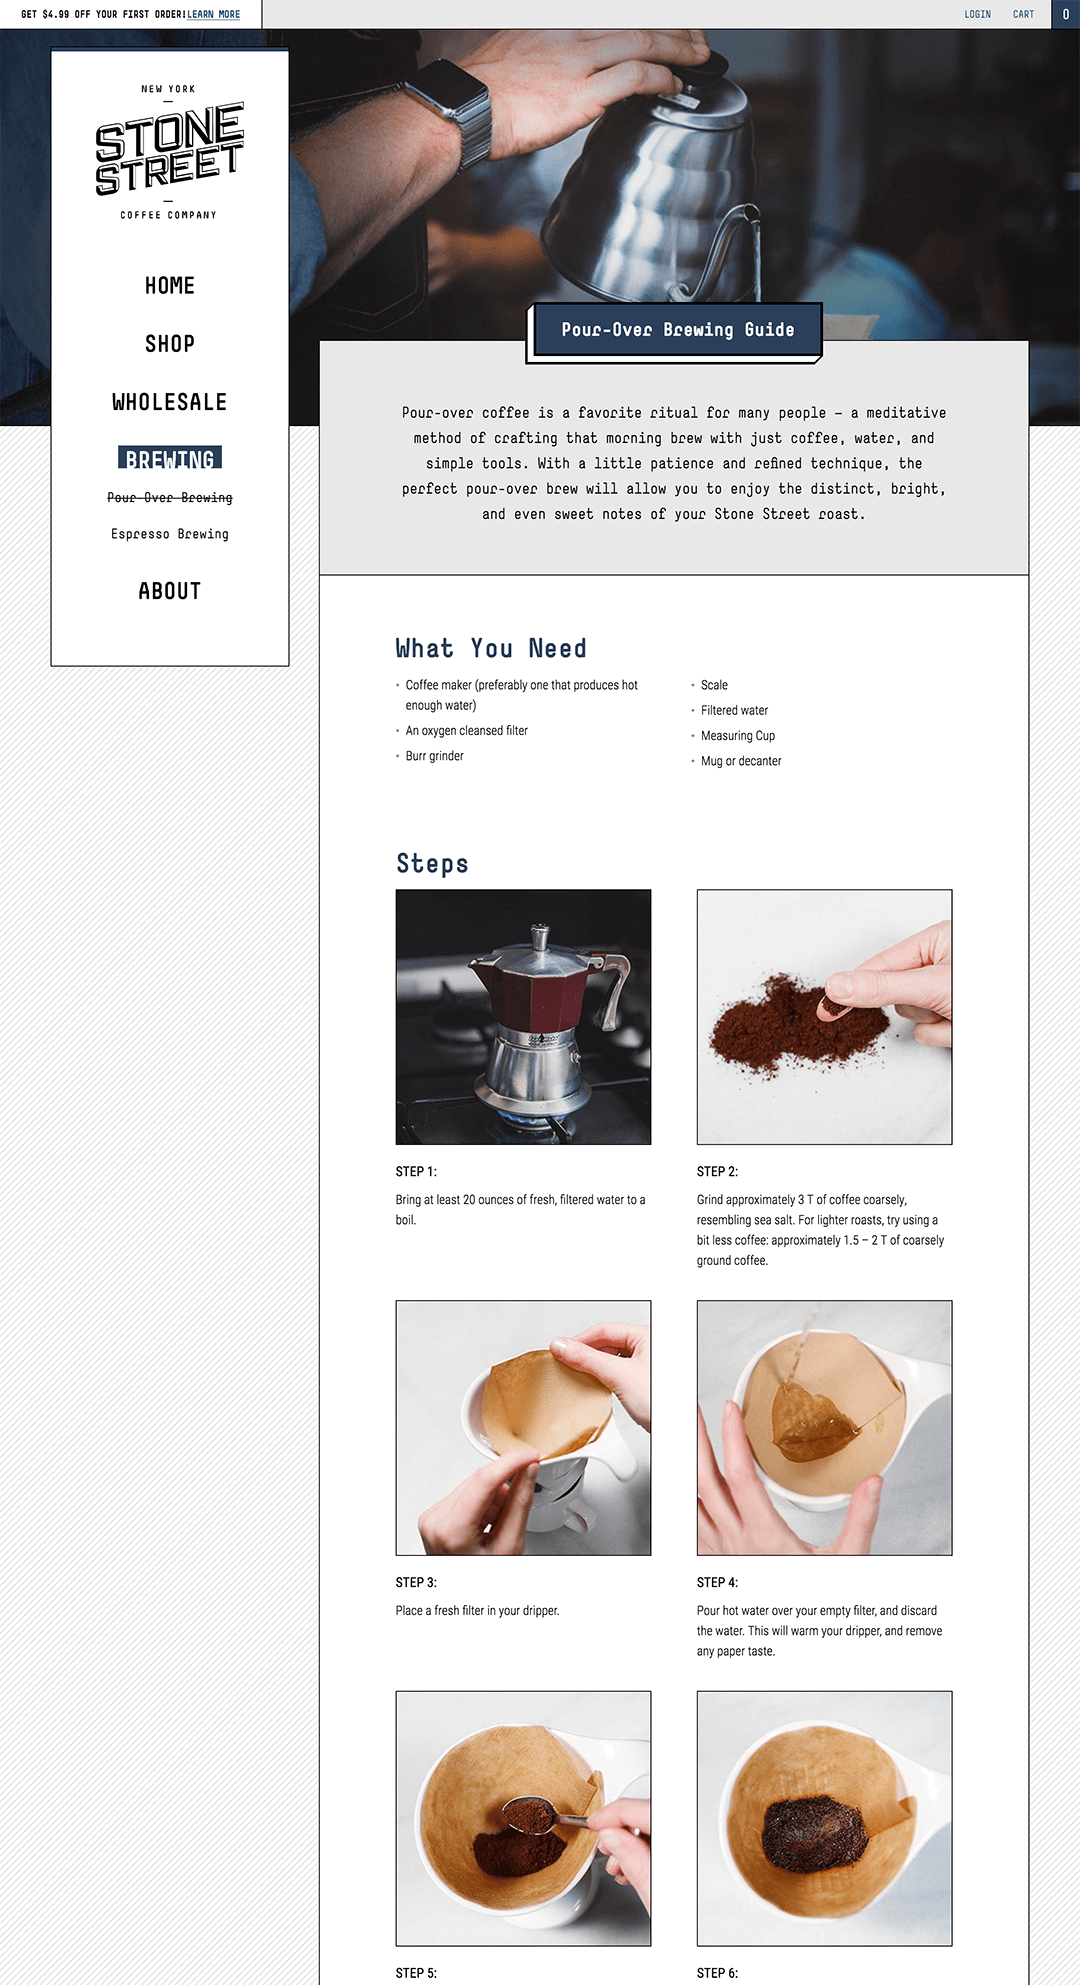 Brewing guide design example